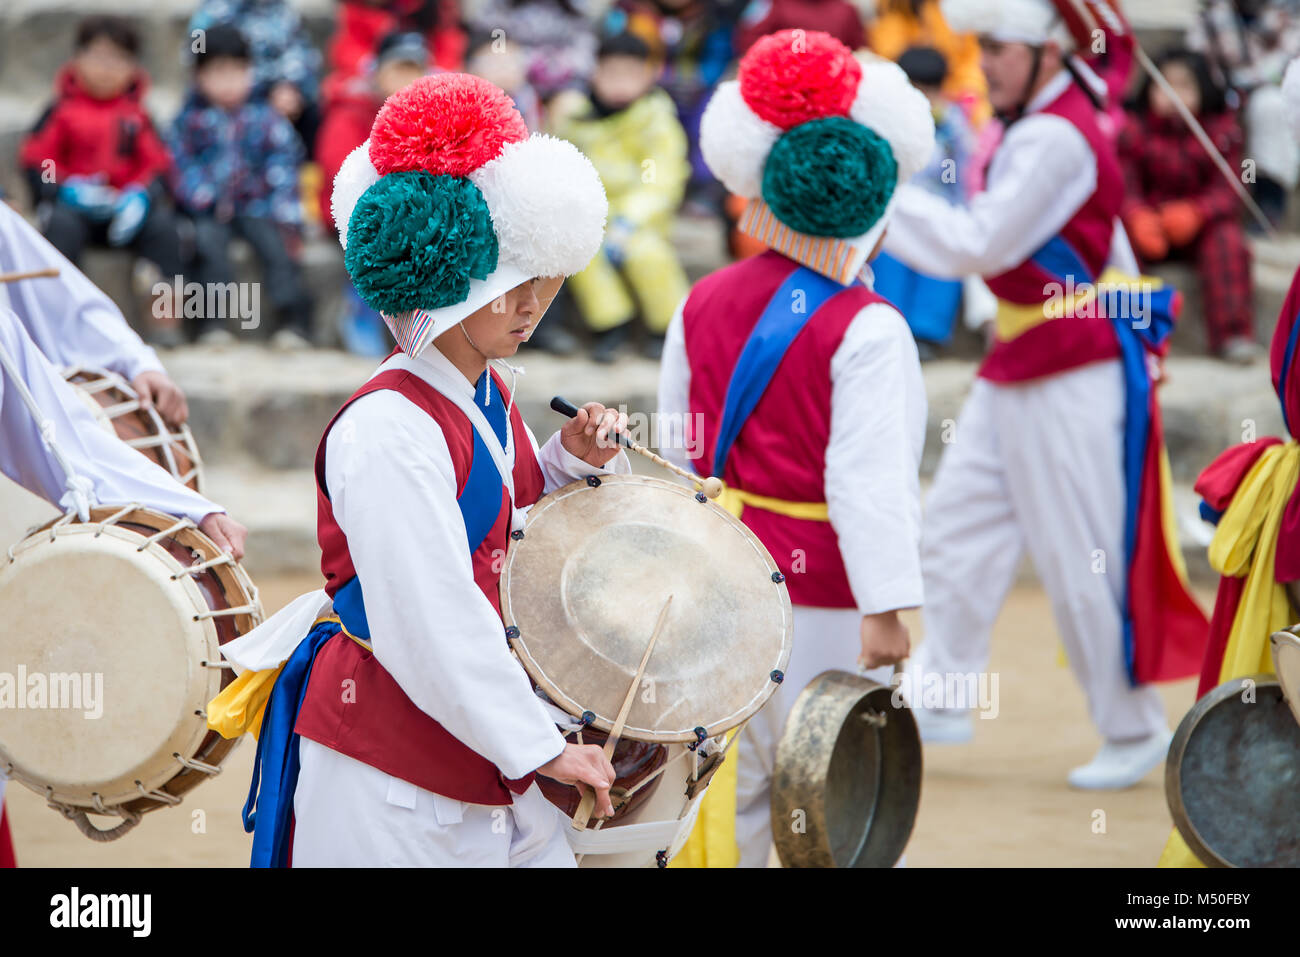 The farmers dance occurred to celebrate the harvest in Korea. - Stock Image